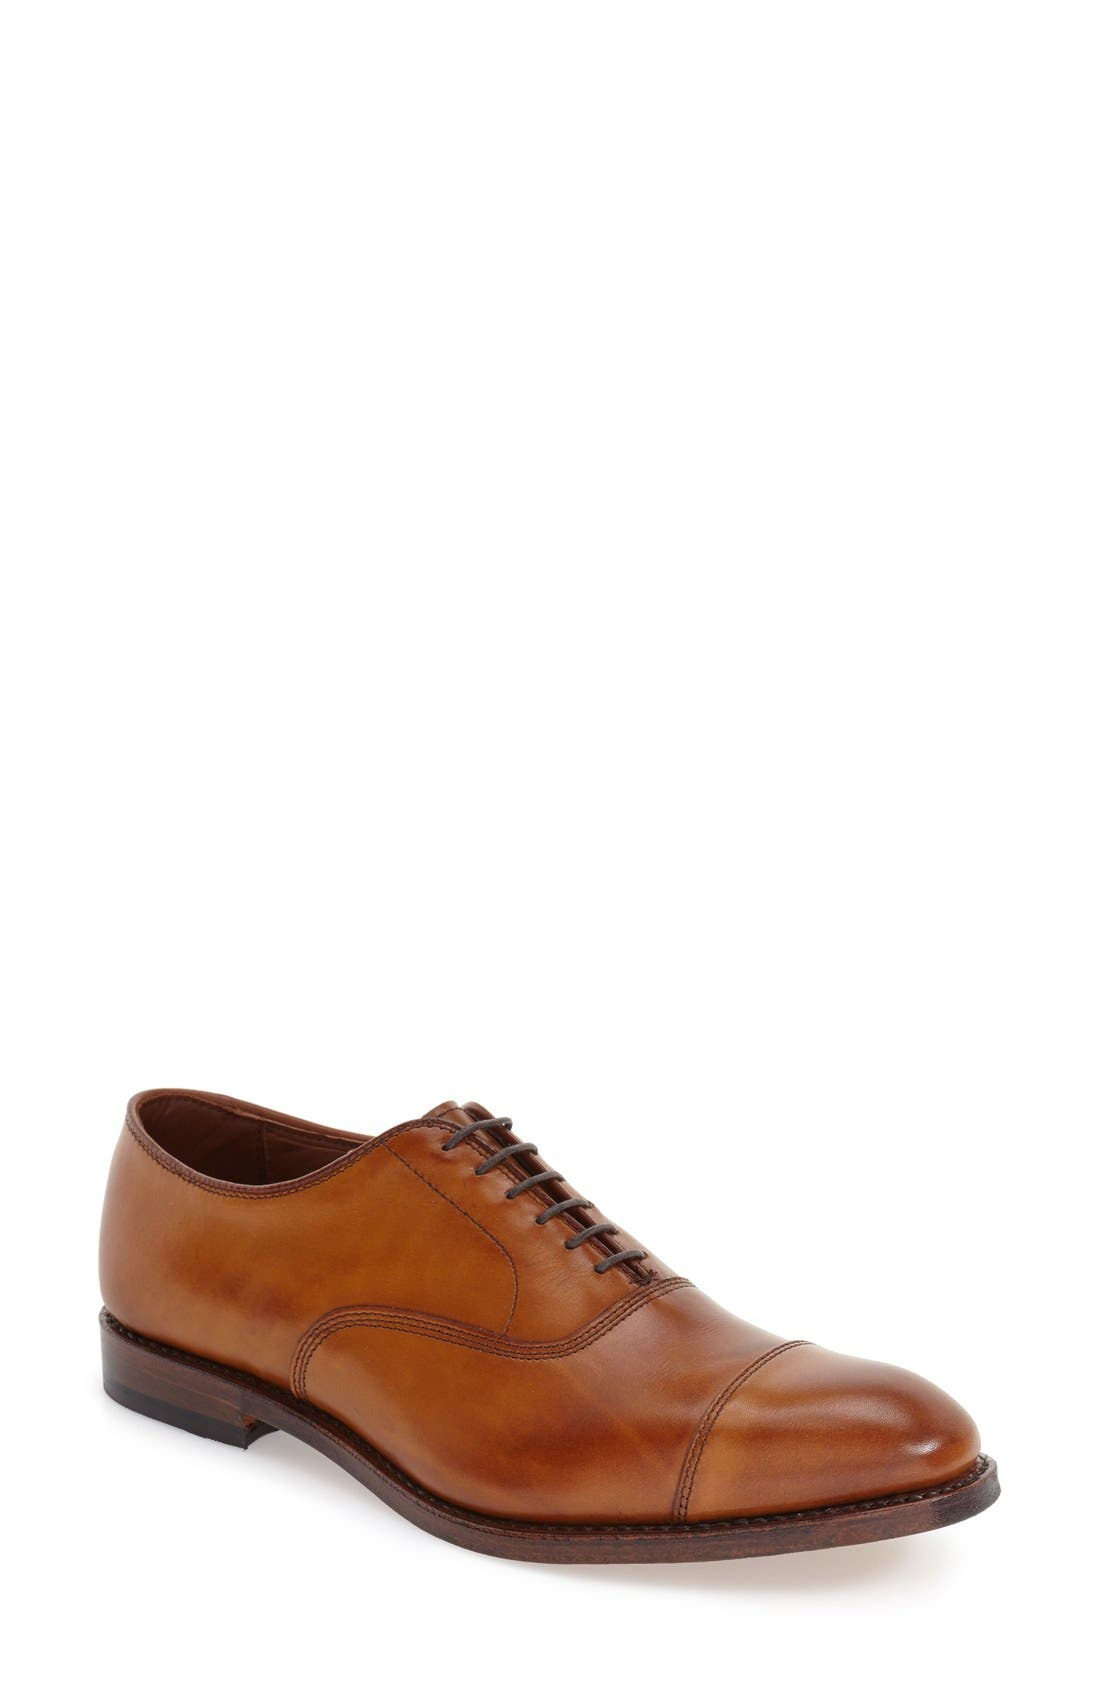 'Park Avenue' Cap Toe Oxford,                             Main thumbnail 1, color,                             WALNUT